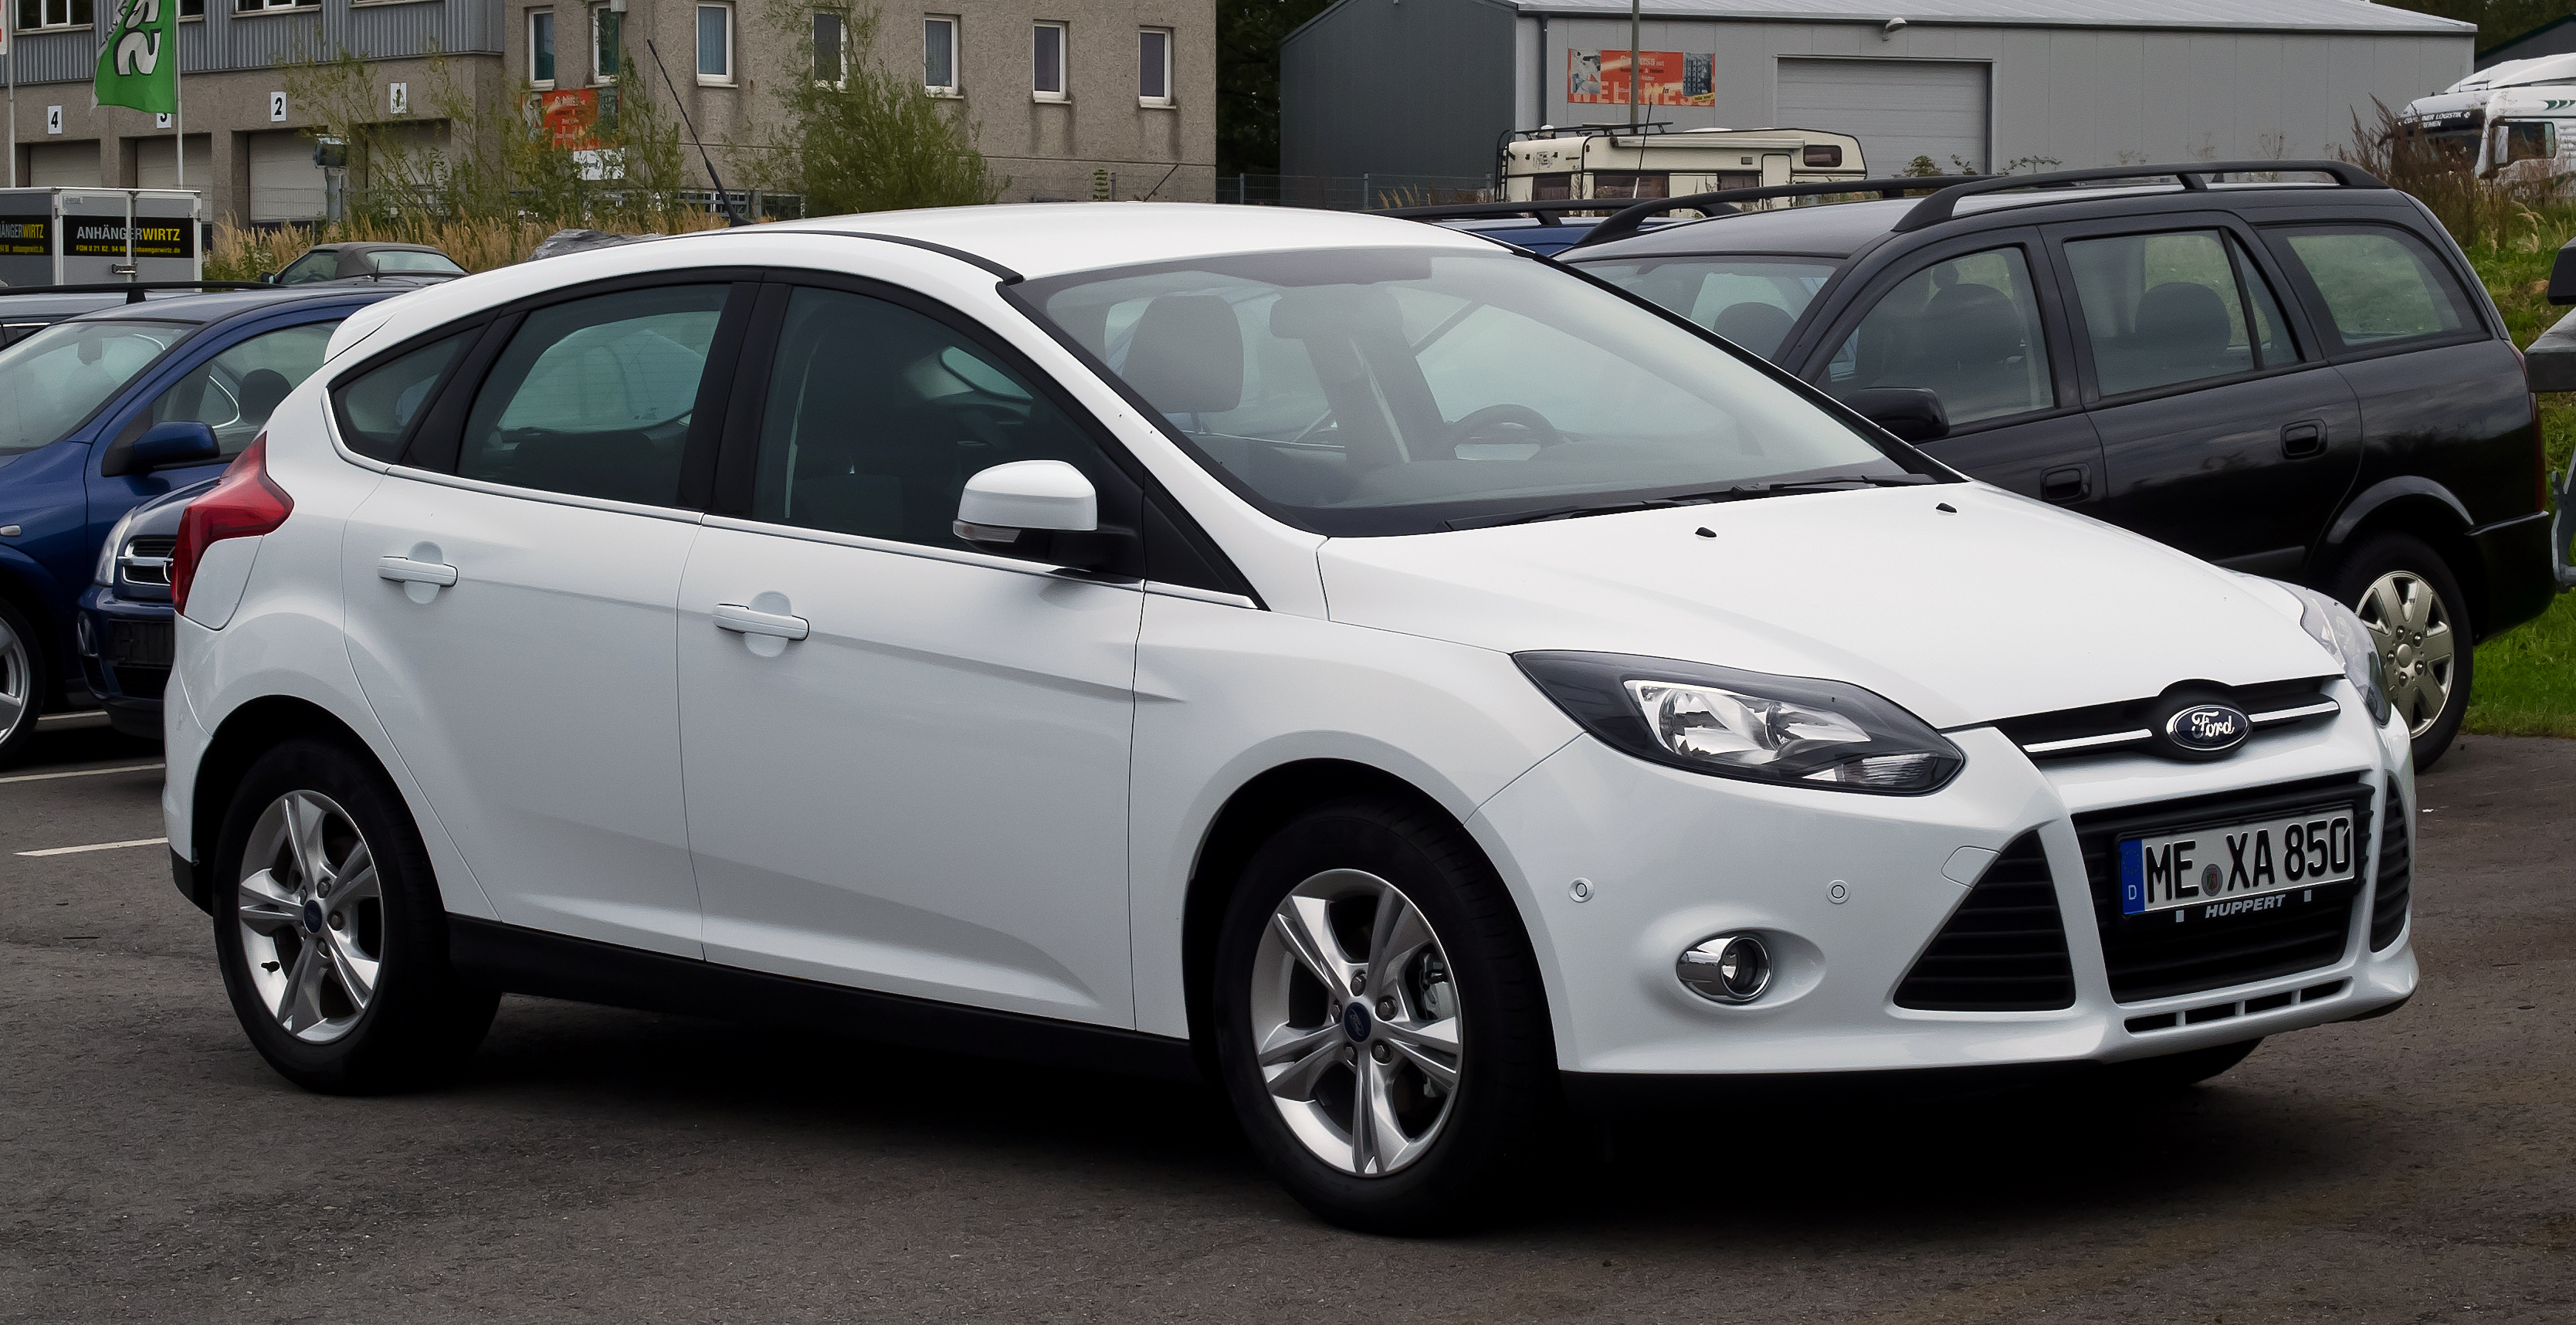 Ford Focus 1.6 2012 photo - 2